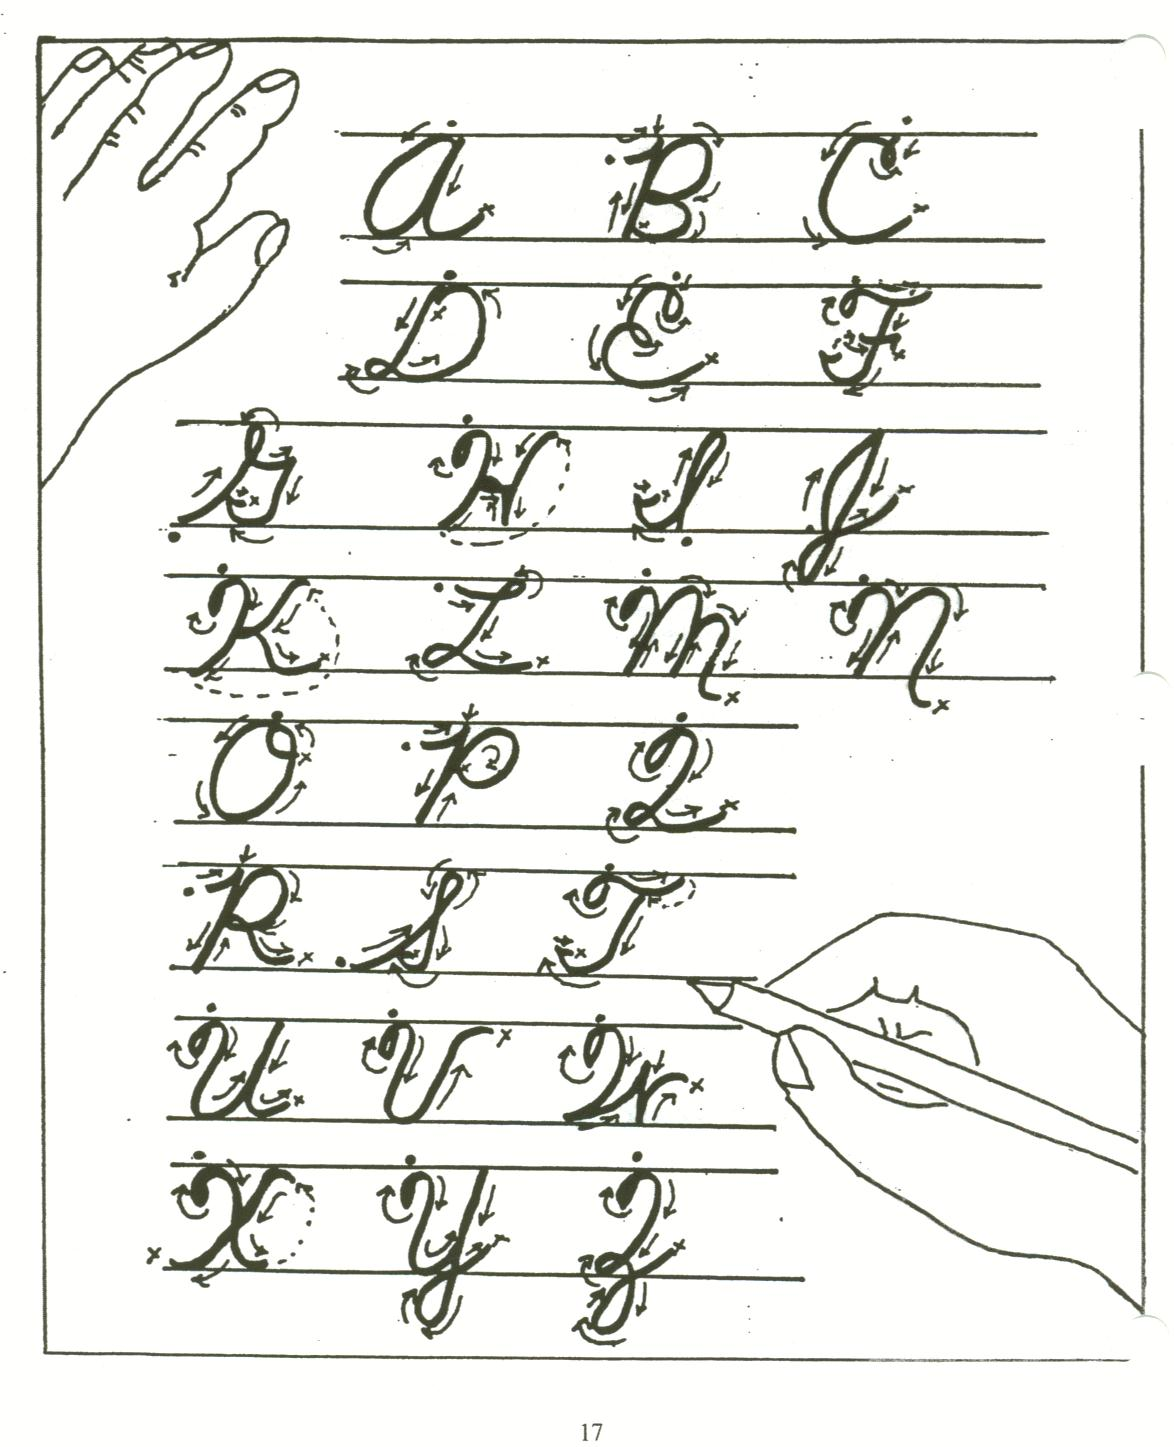 Cursive writing exercises